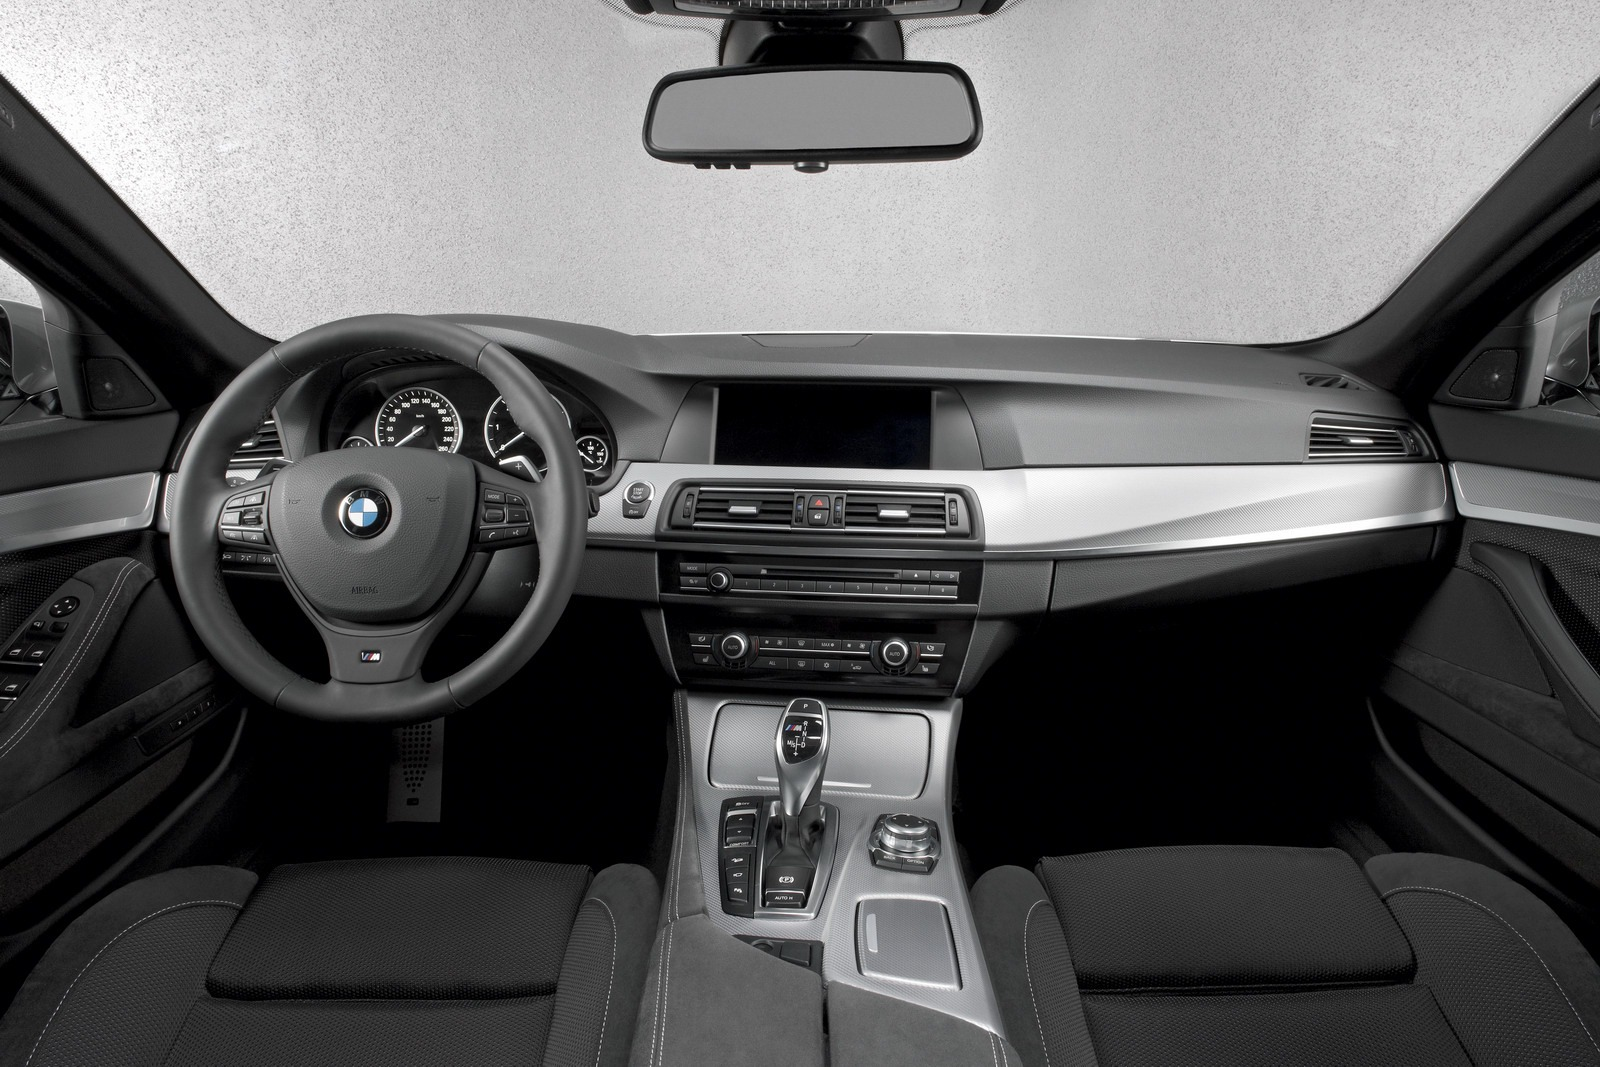 BMW M550d 172 M550d xDrive Touring, X5 M50d and X6 M50d to Be Launched by BMW